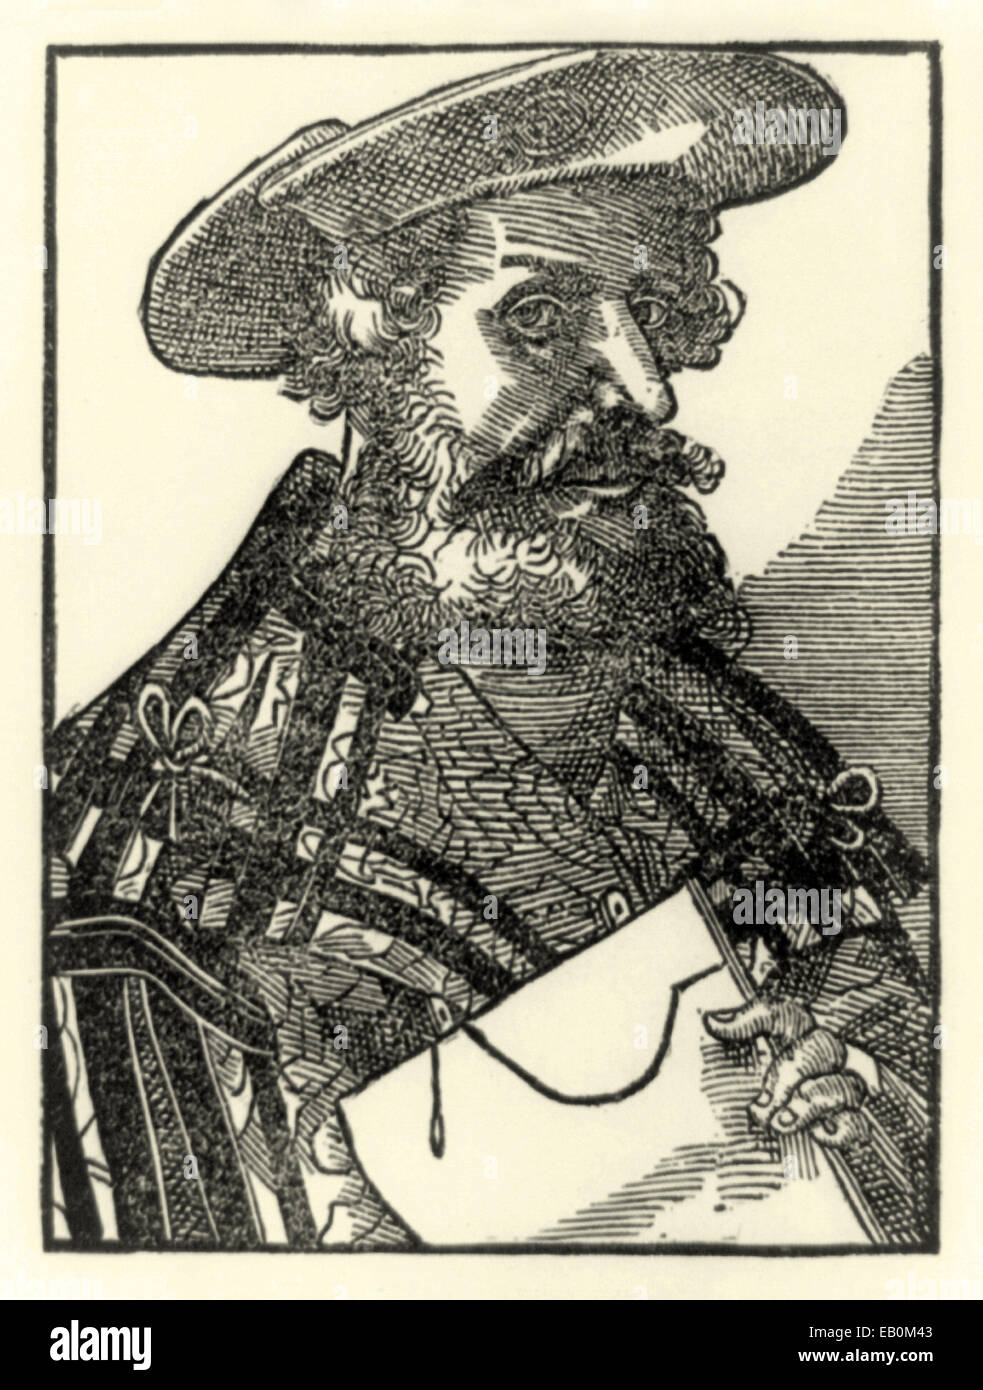 Woodcut portrait of Claudius Ptolemy  (90-168AD) published in 1587. See description for more information. - Stock Image